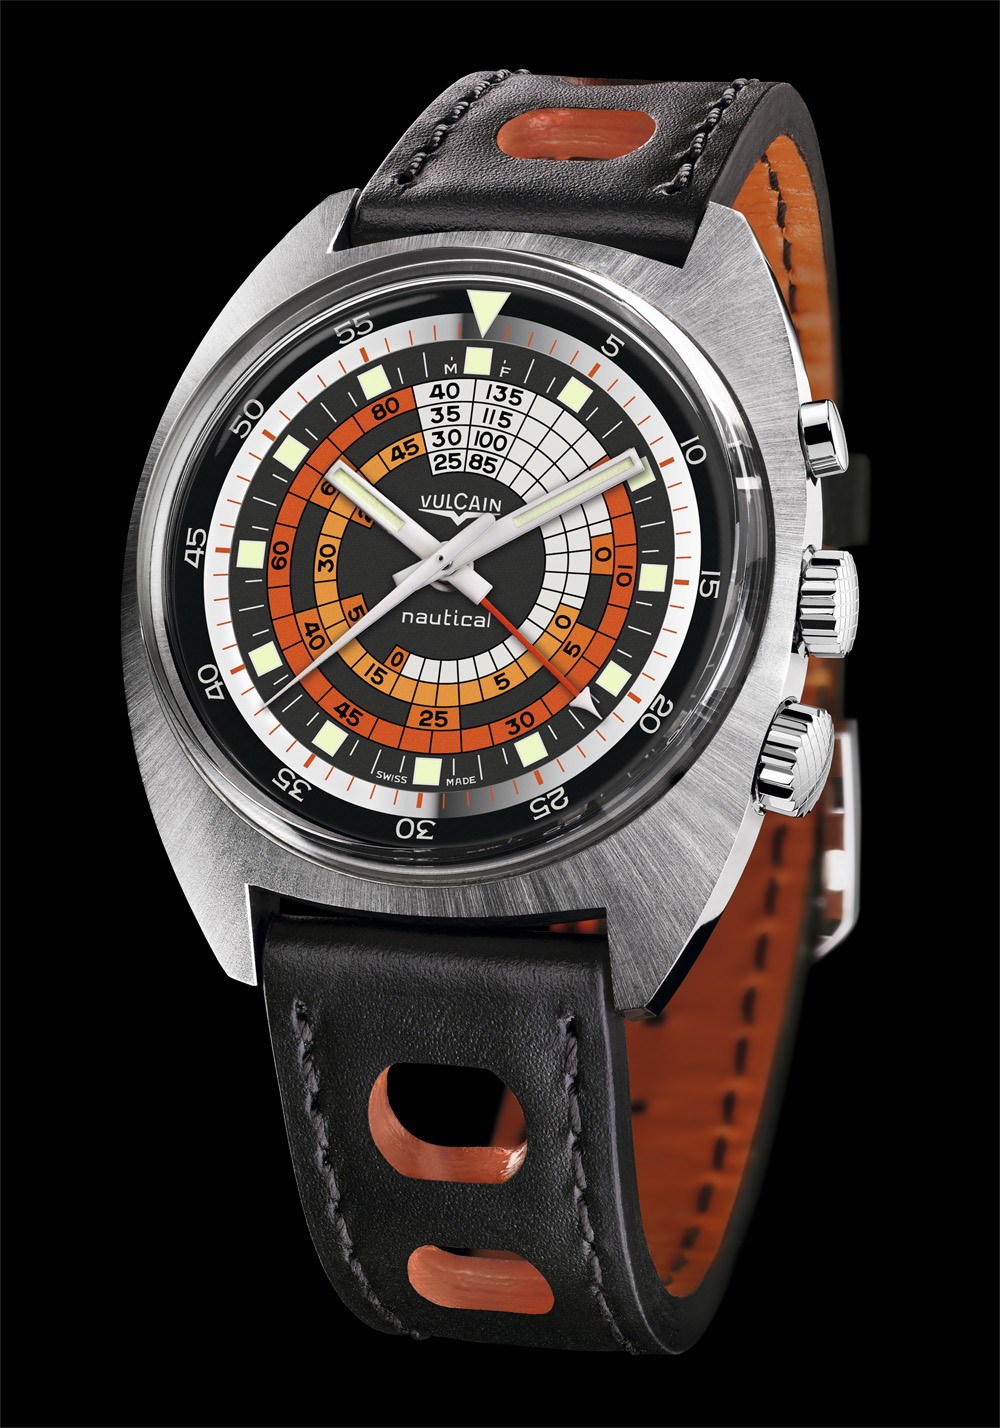 Montre Vulcain Nautical Seventies